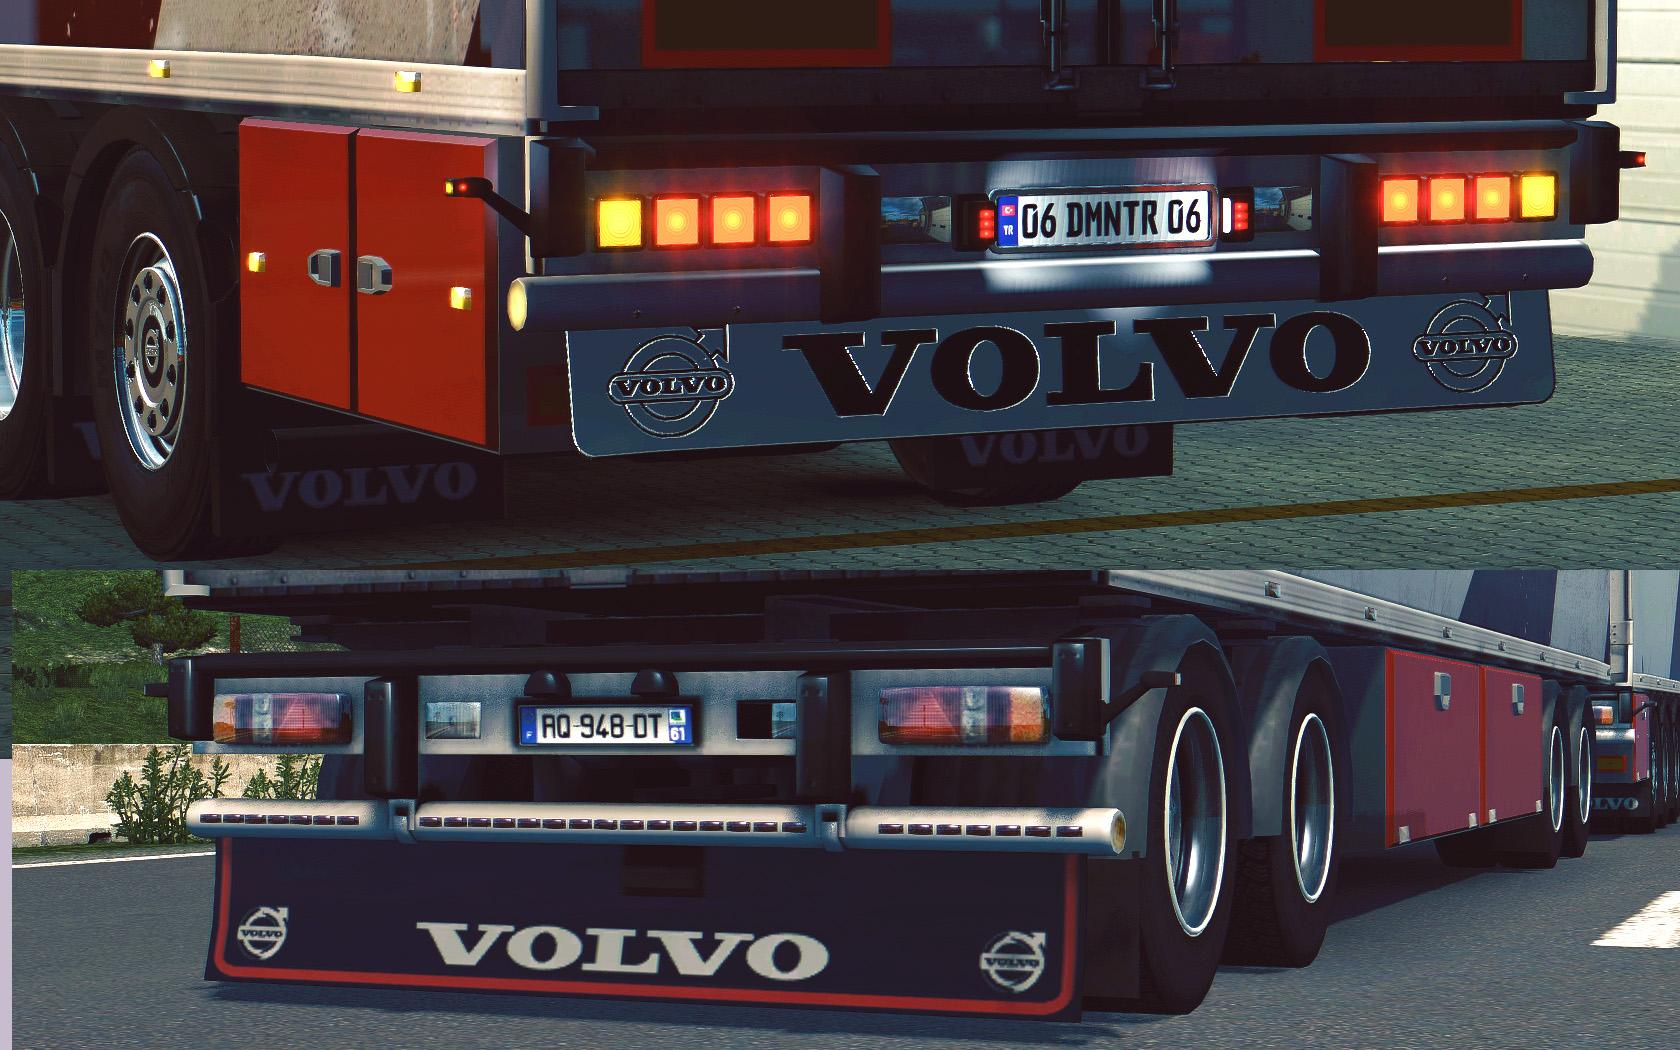 Volvo Fh 2013 Ohaha Tandem And Accessories V1 1 Ets 2